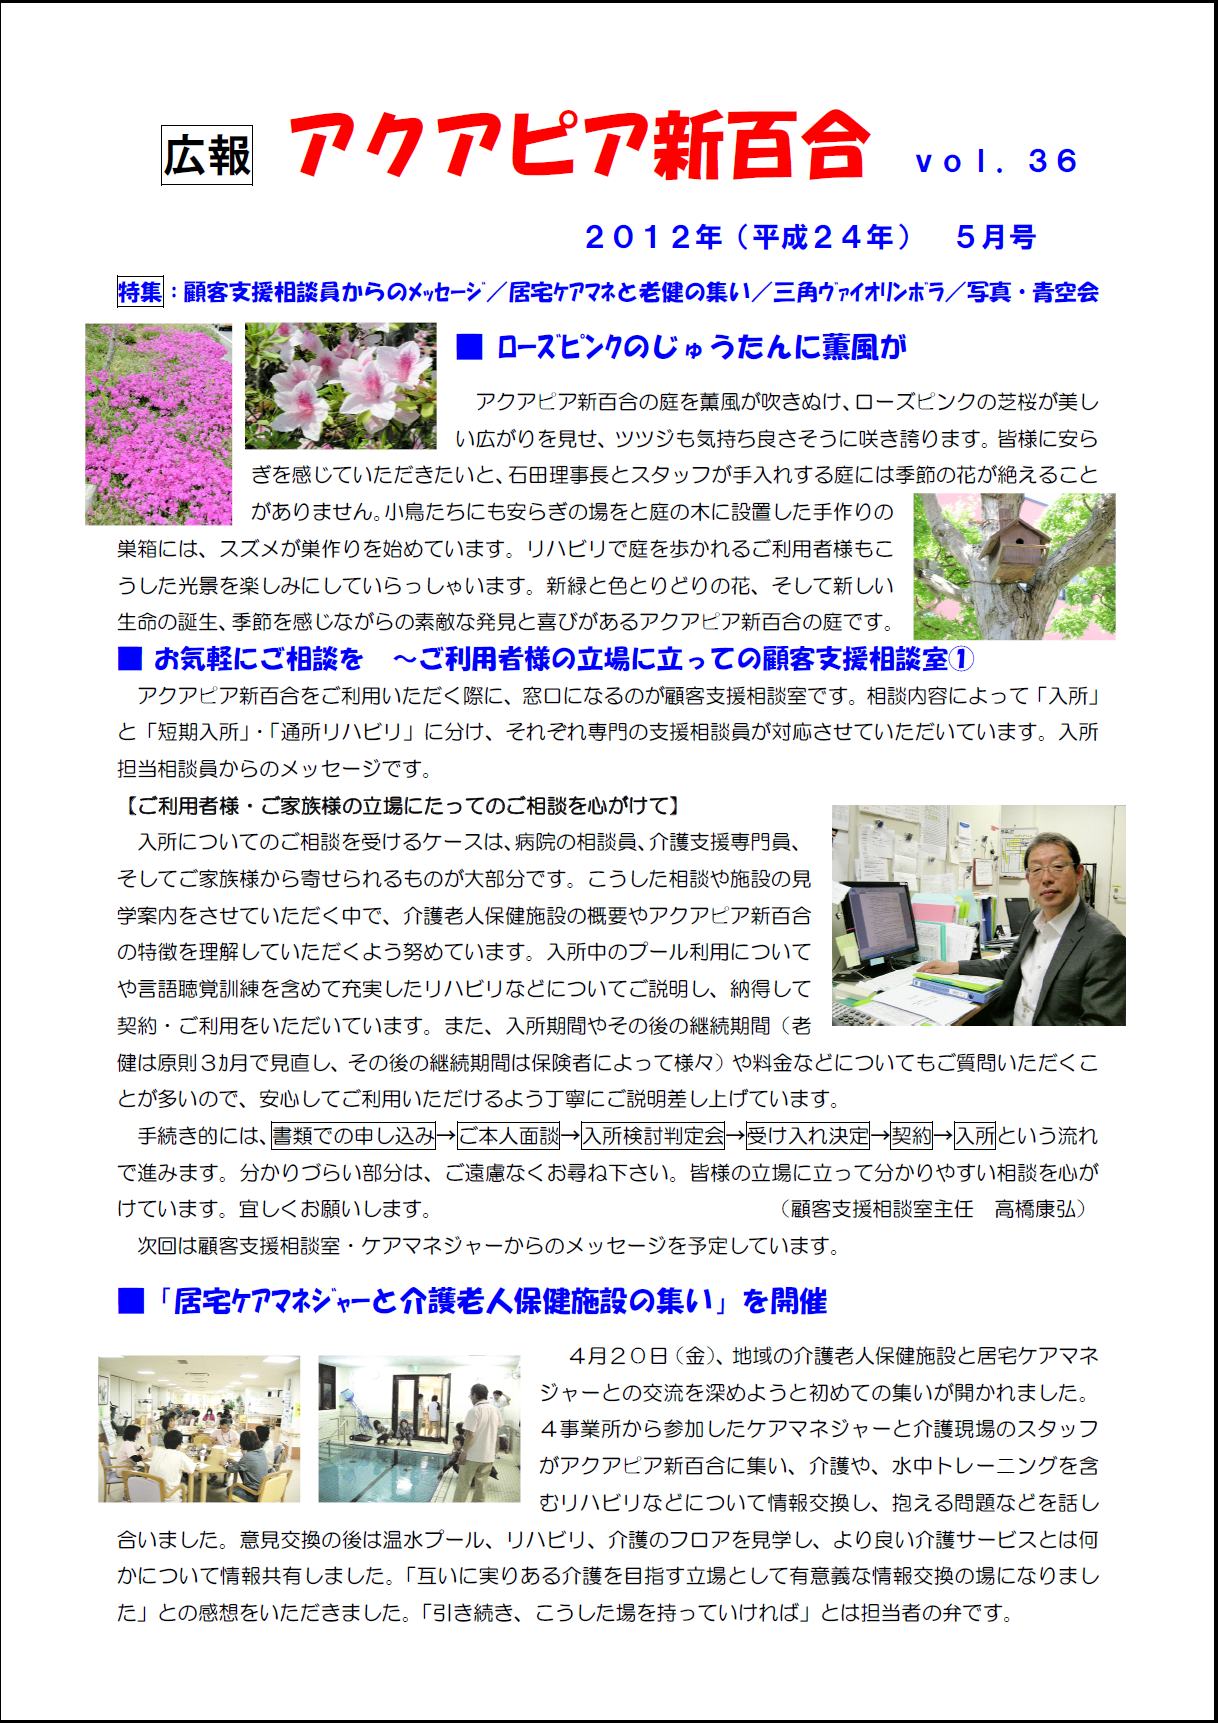 201205-a.PNG